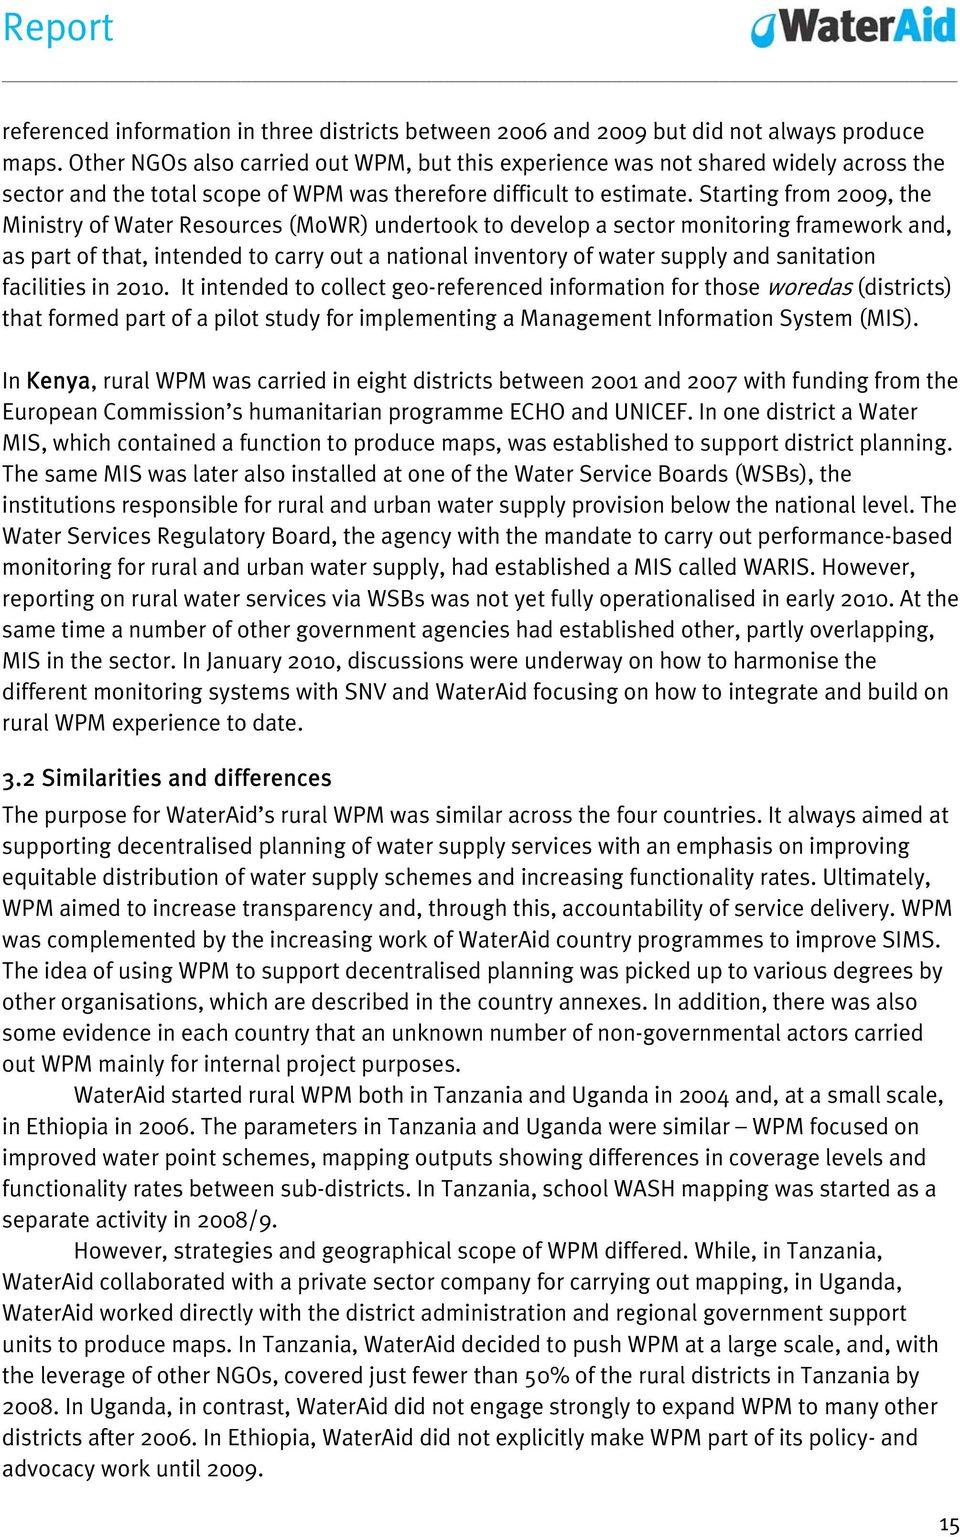 Starting from 2009, the Ministry of Water Resources (MoWR) undertook to develop a sector monitoring framework and, as part of that, intended to carry out a national inventory of water supply and